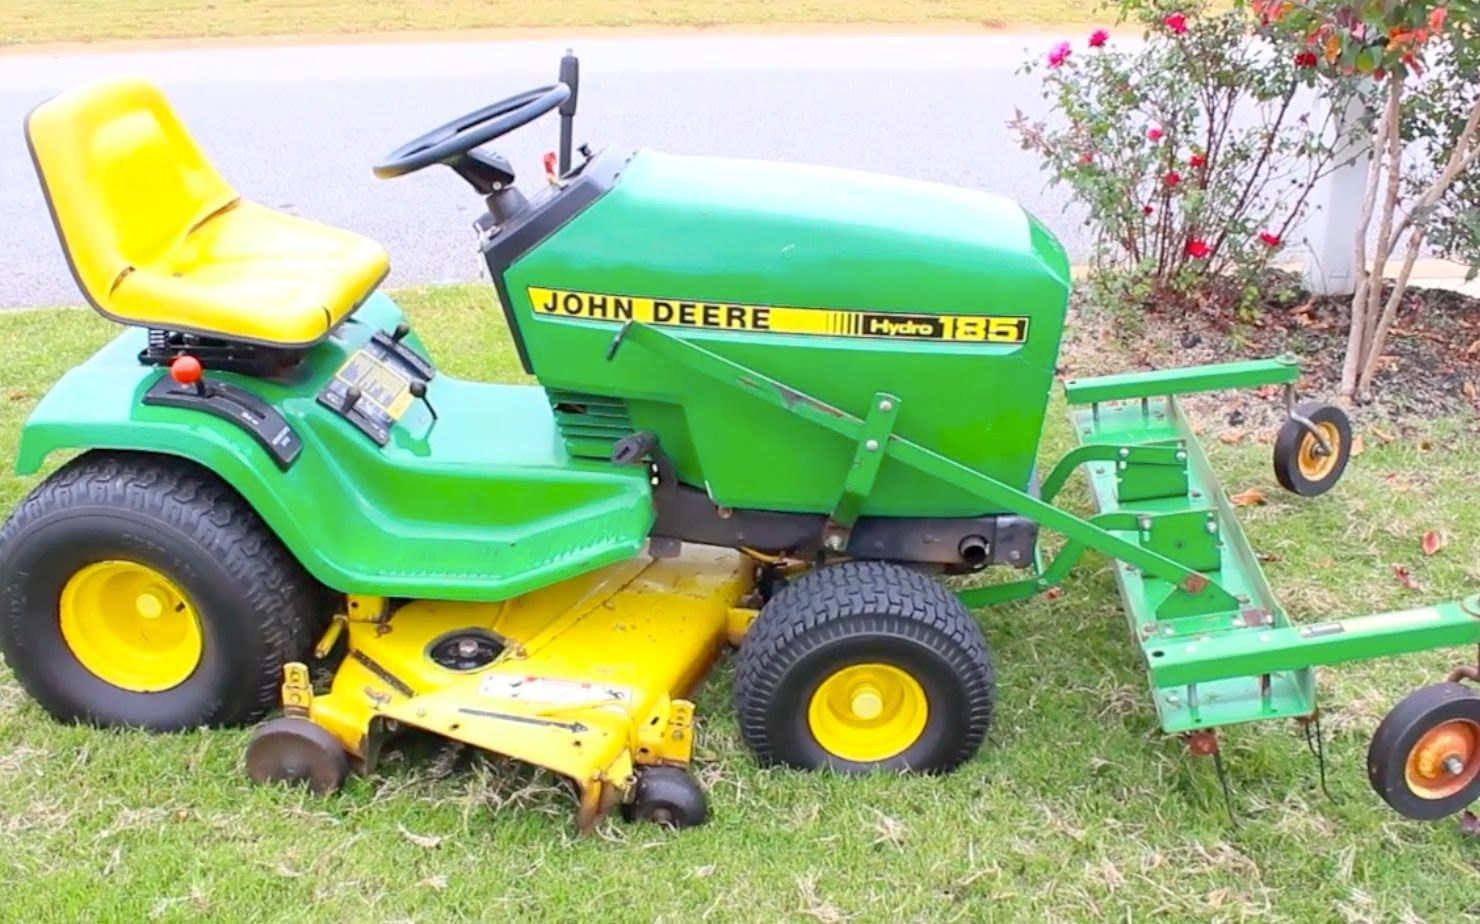 How to dethatch a lawn lawnmower johndeere grass